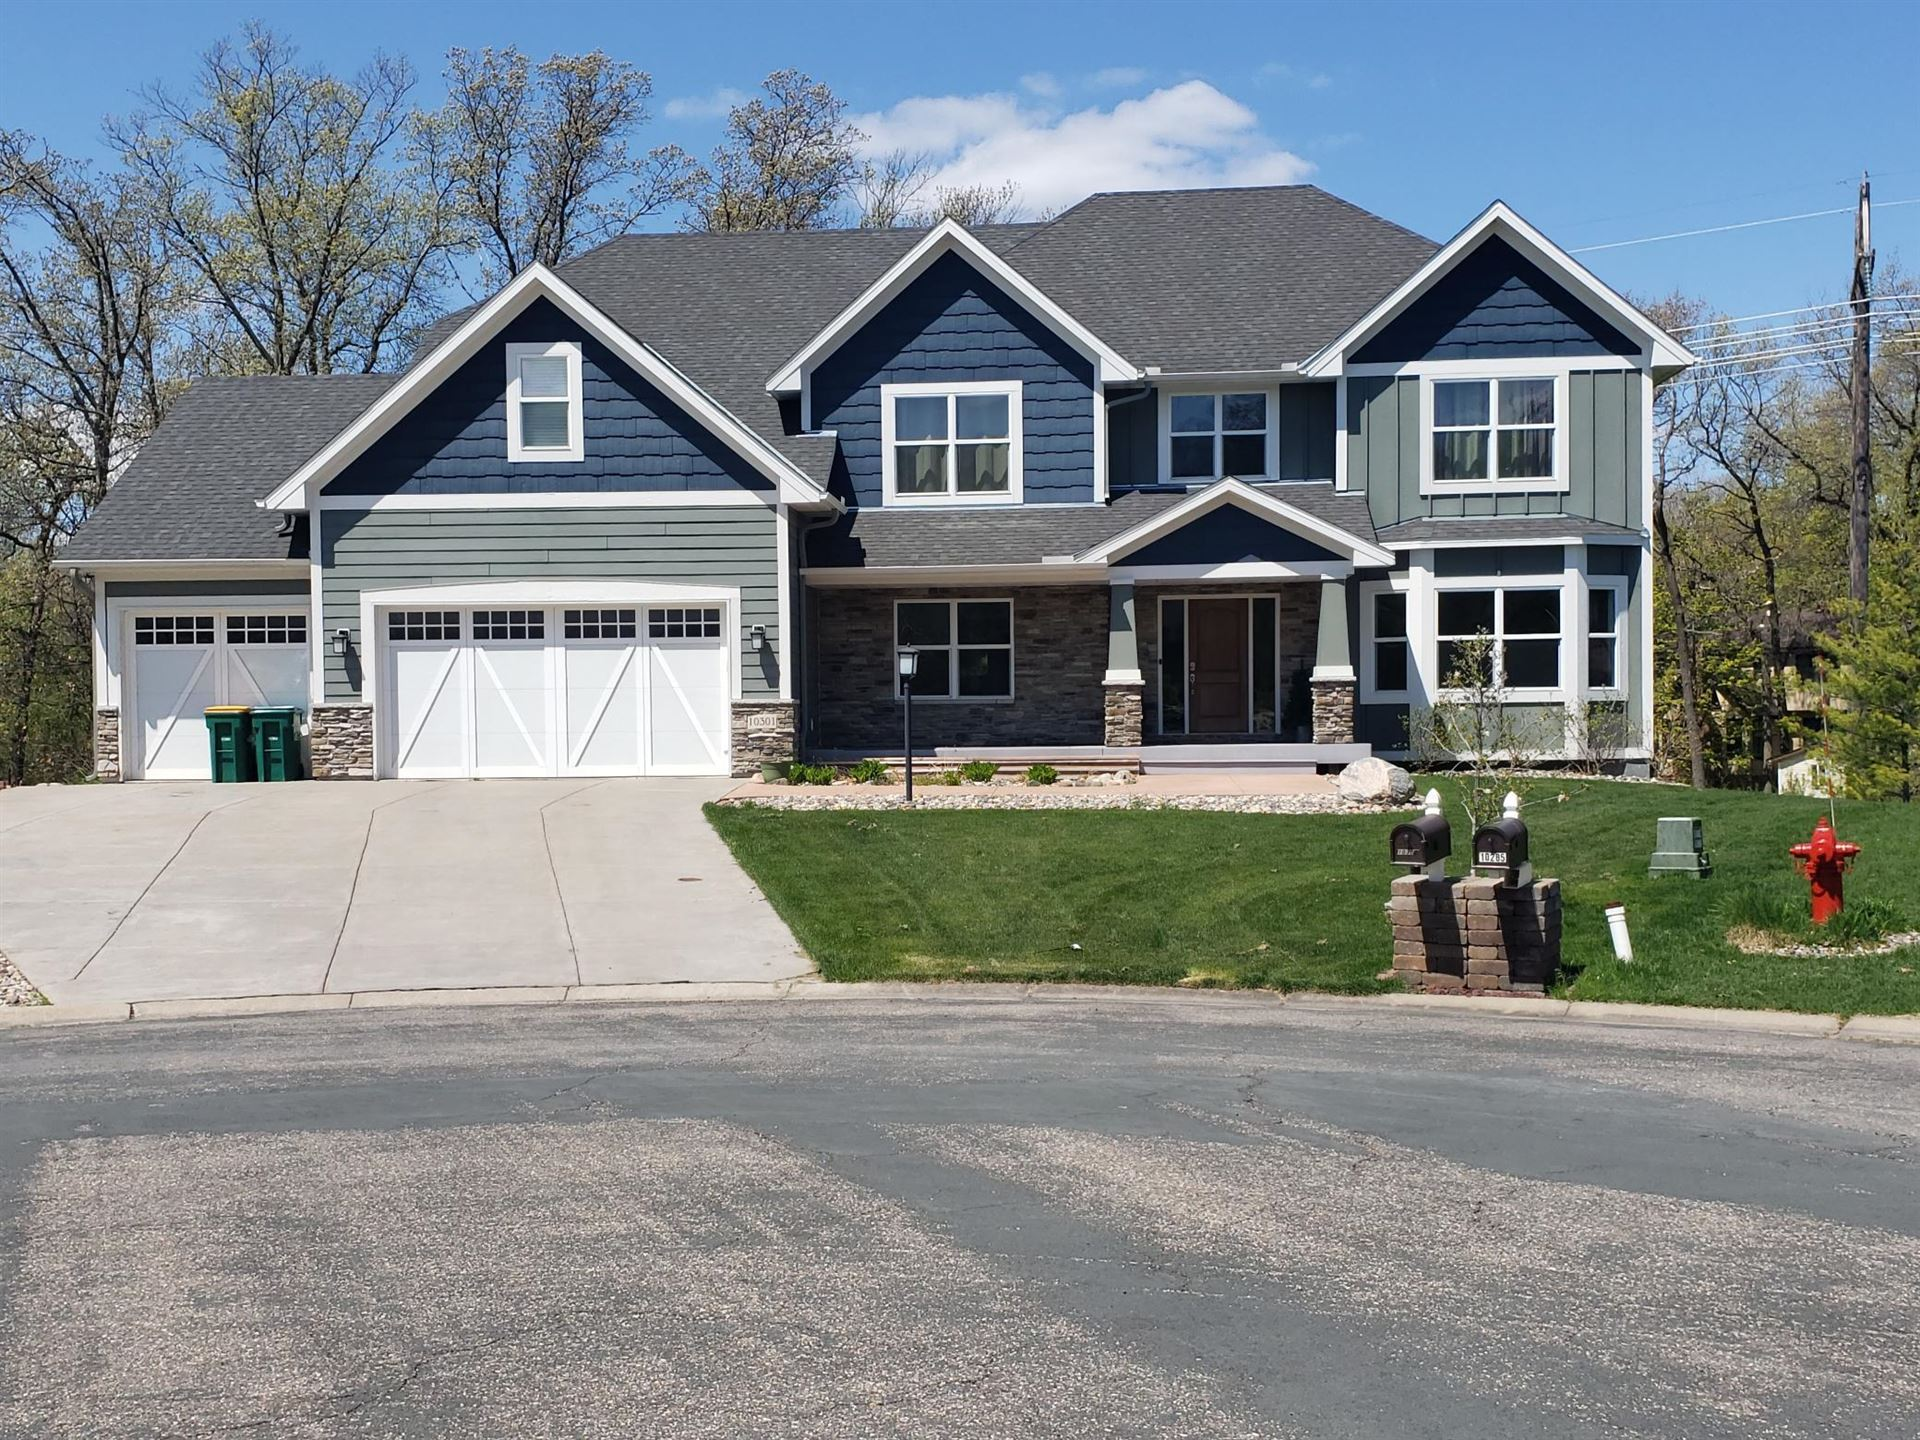 Photo of 10301 176th Street W, Lakeville, MN 55044 (MLS # 6101785)